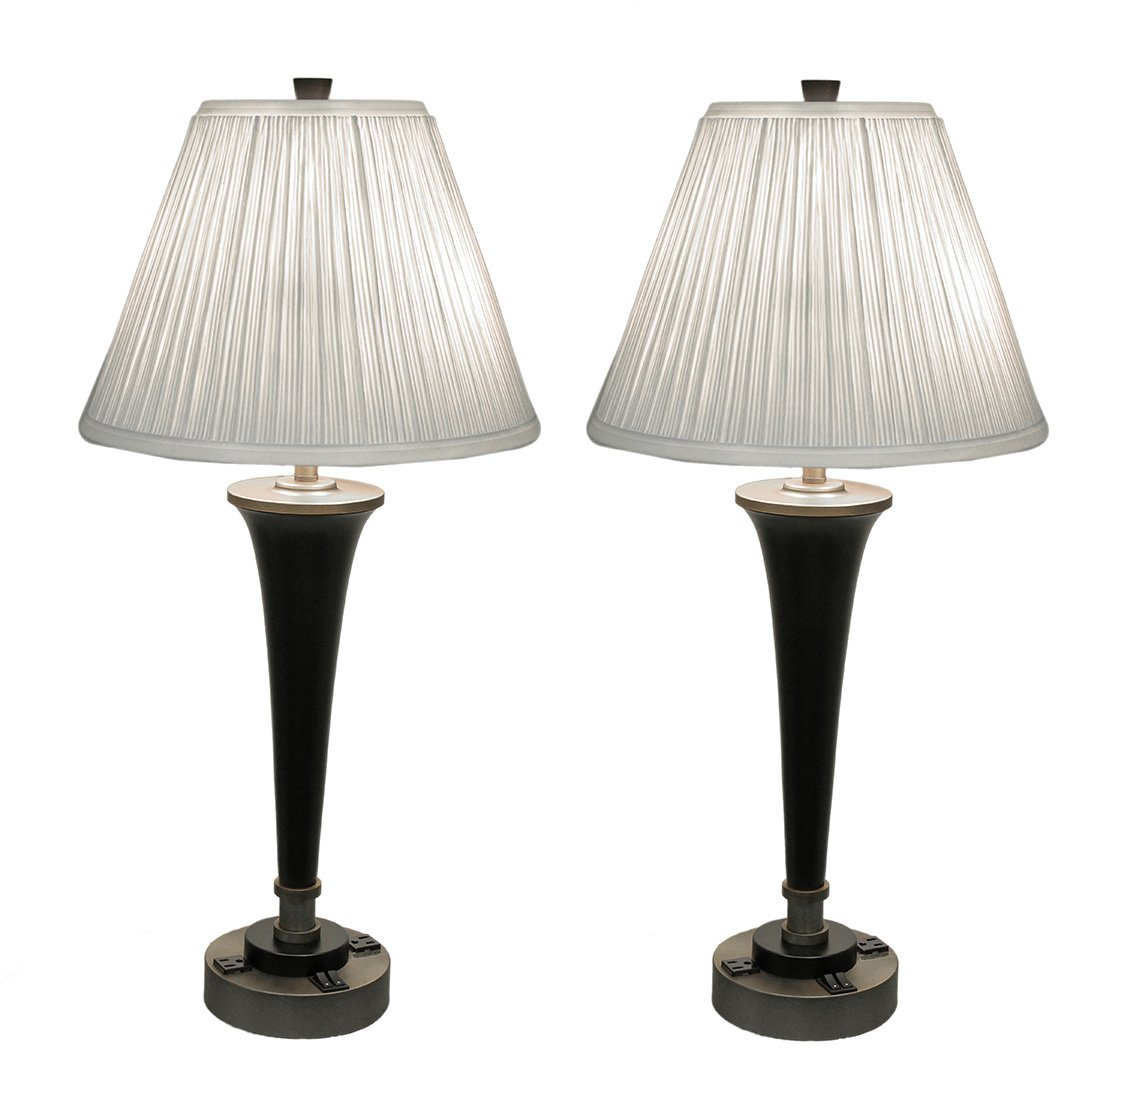 Metal Table Lamps Pair Of Black & Brass Finish Modern Dual Light Table Lamp W/Power Outlets 15 X 31 X 15 Inches Gold